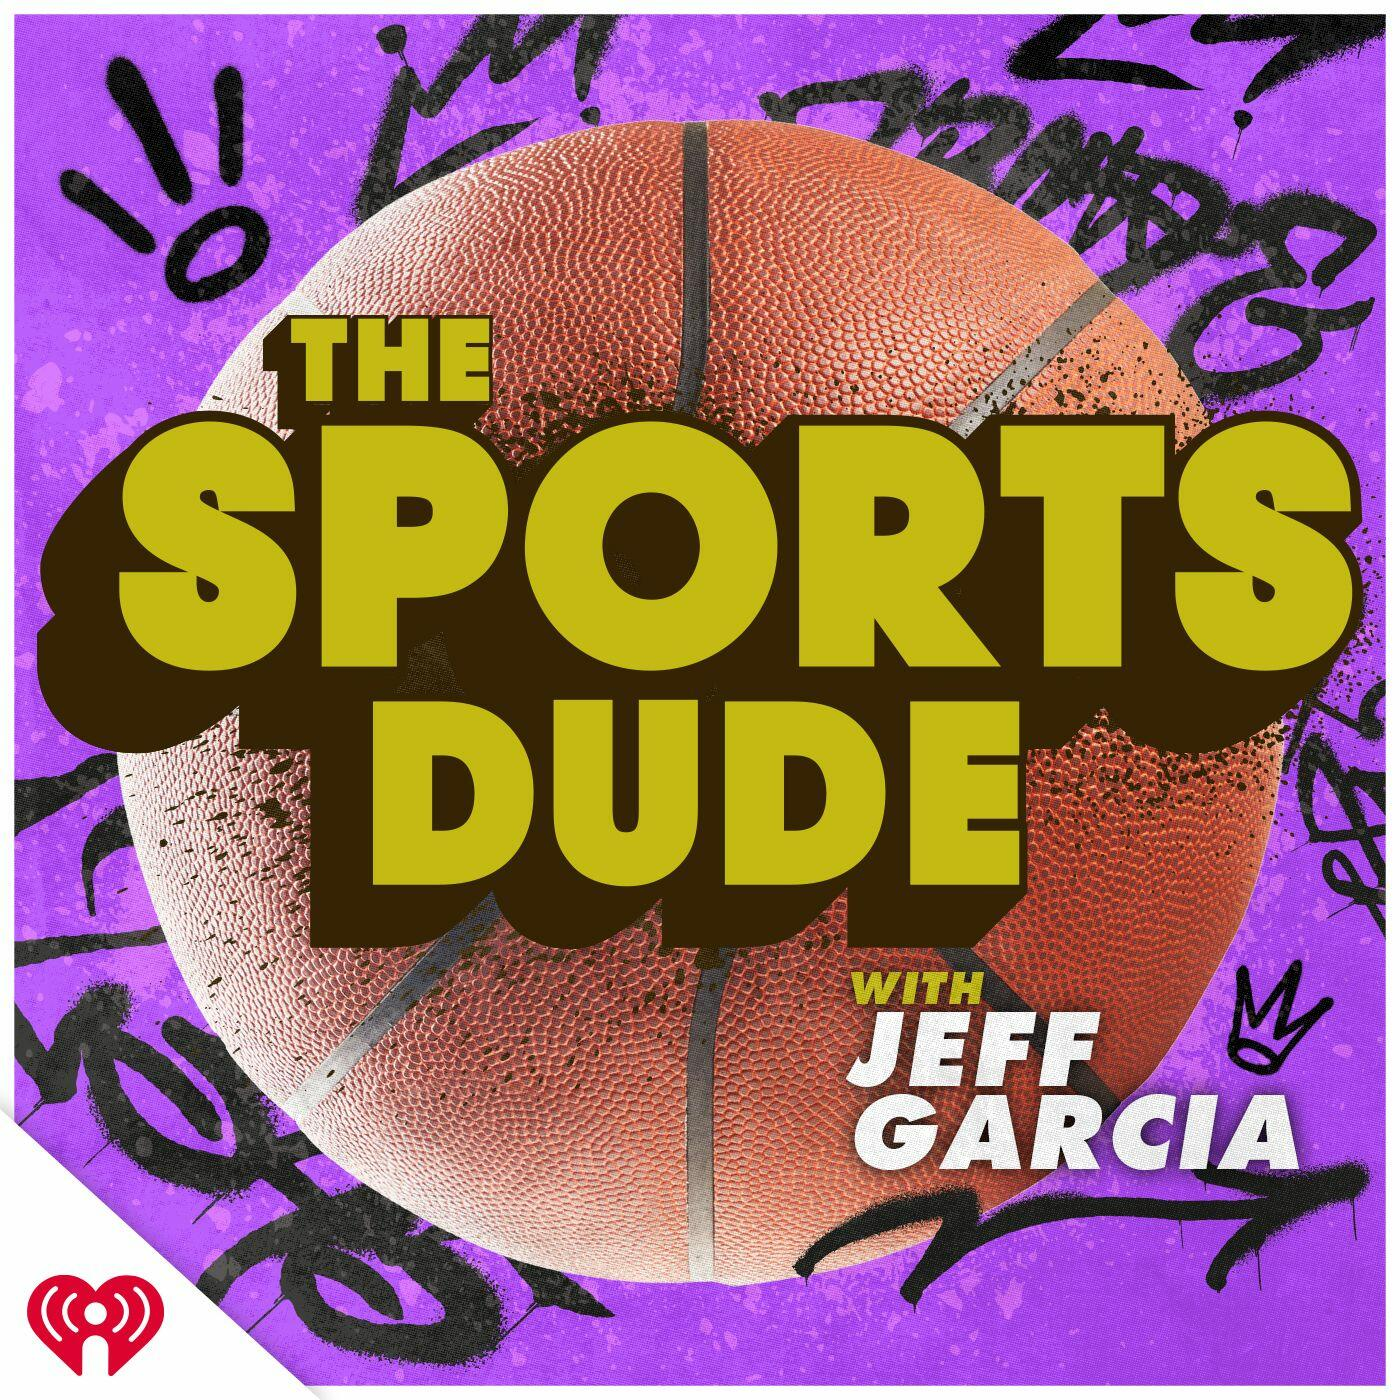 The Sports Dude with Jeff Garcia